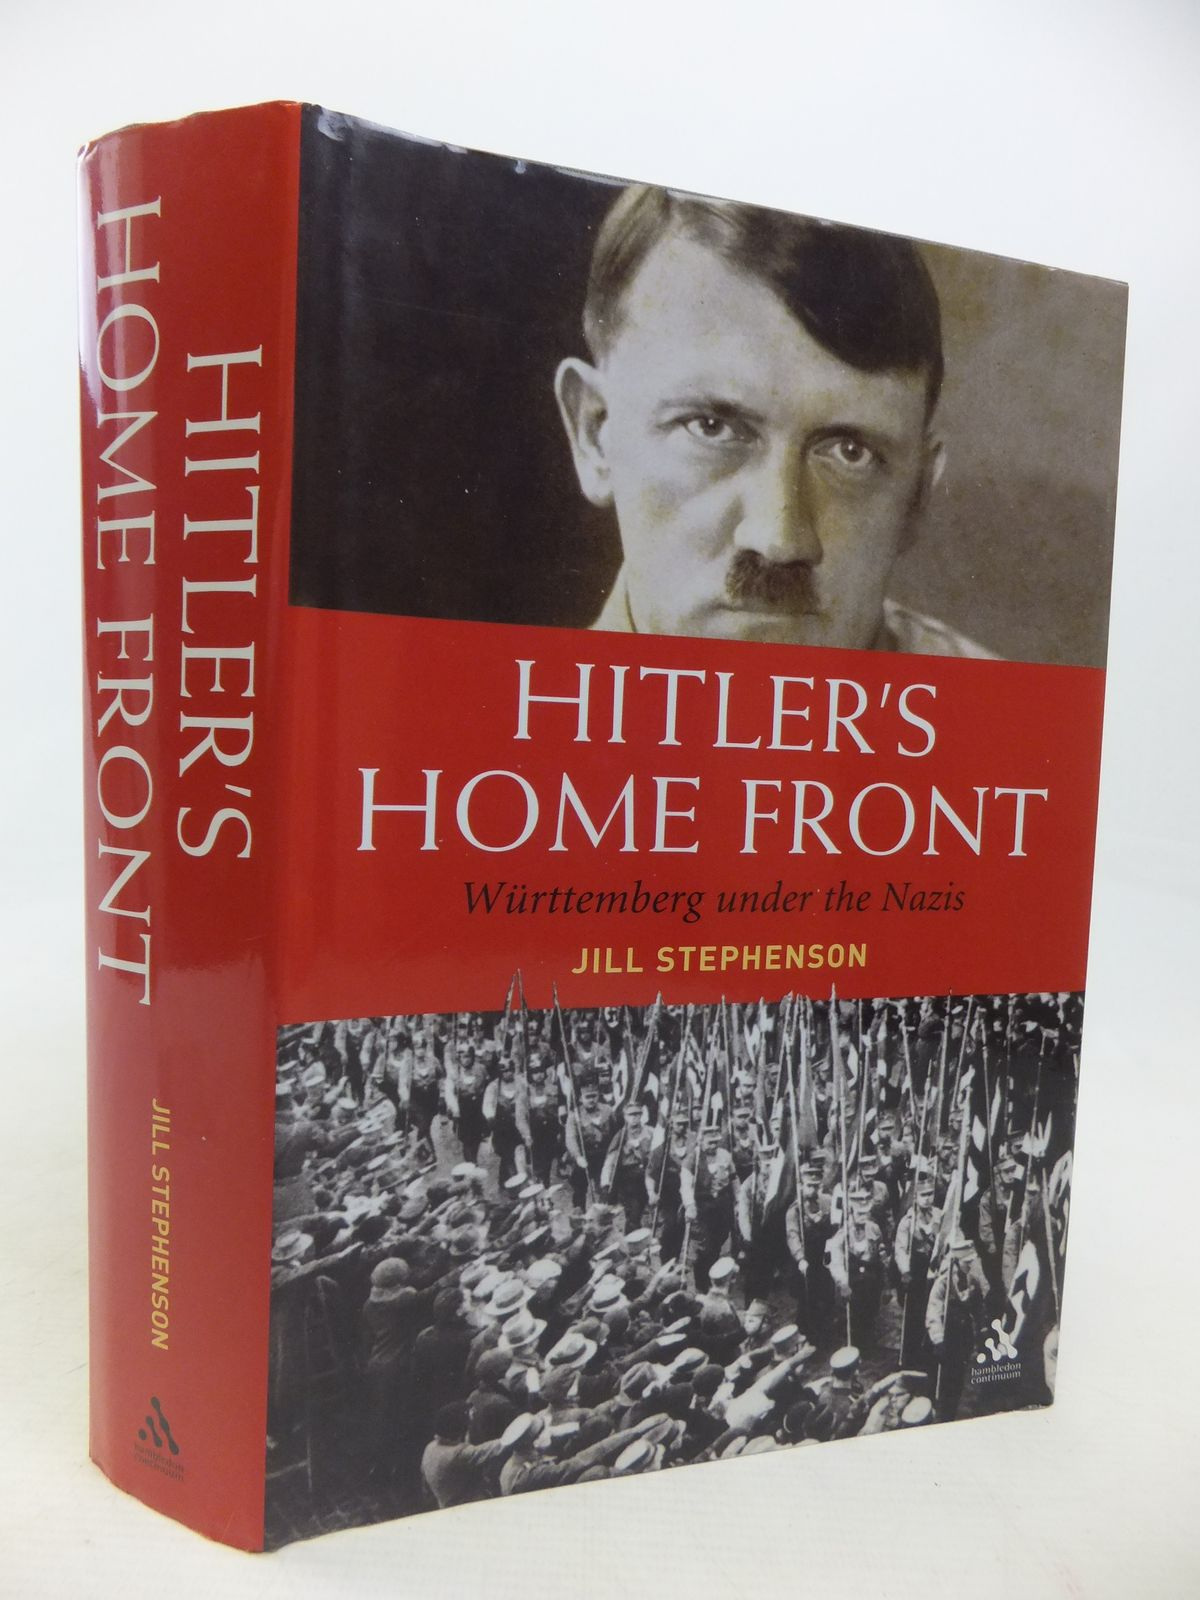 Photo of HILTER'S HOME FRONT WURTTEMBERG UNDER THE NAZIS written by Stephenson, Jill published by Hambledon Continuum (STOCK CODE: 2115088)  for sale by Stella & Rose's Books